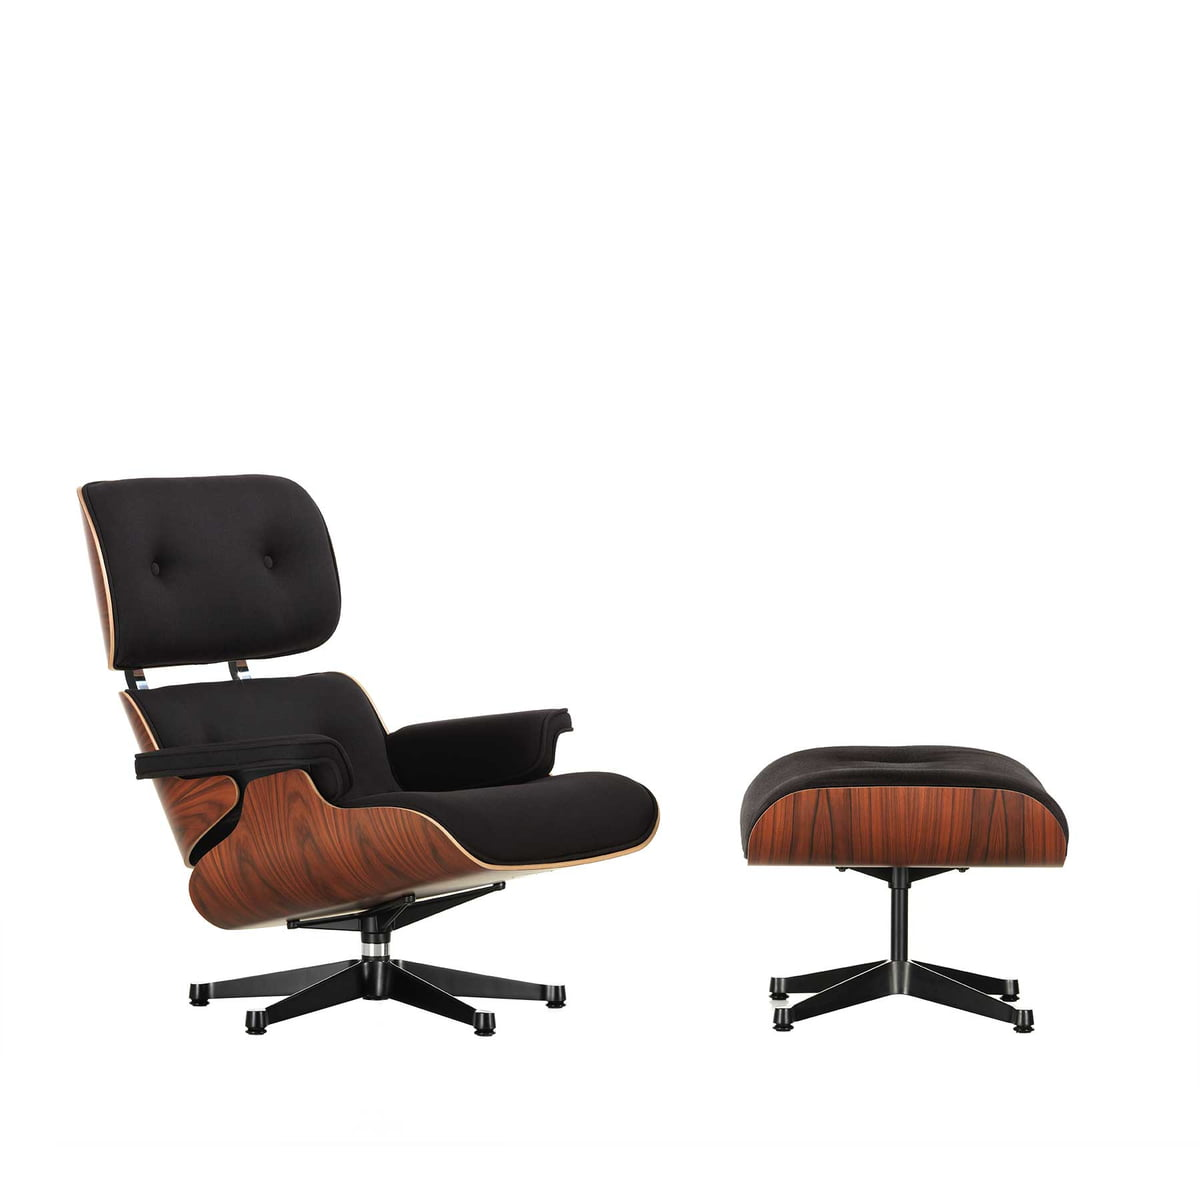 Charmant Lounge Chair With Twill Fabric